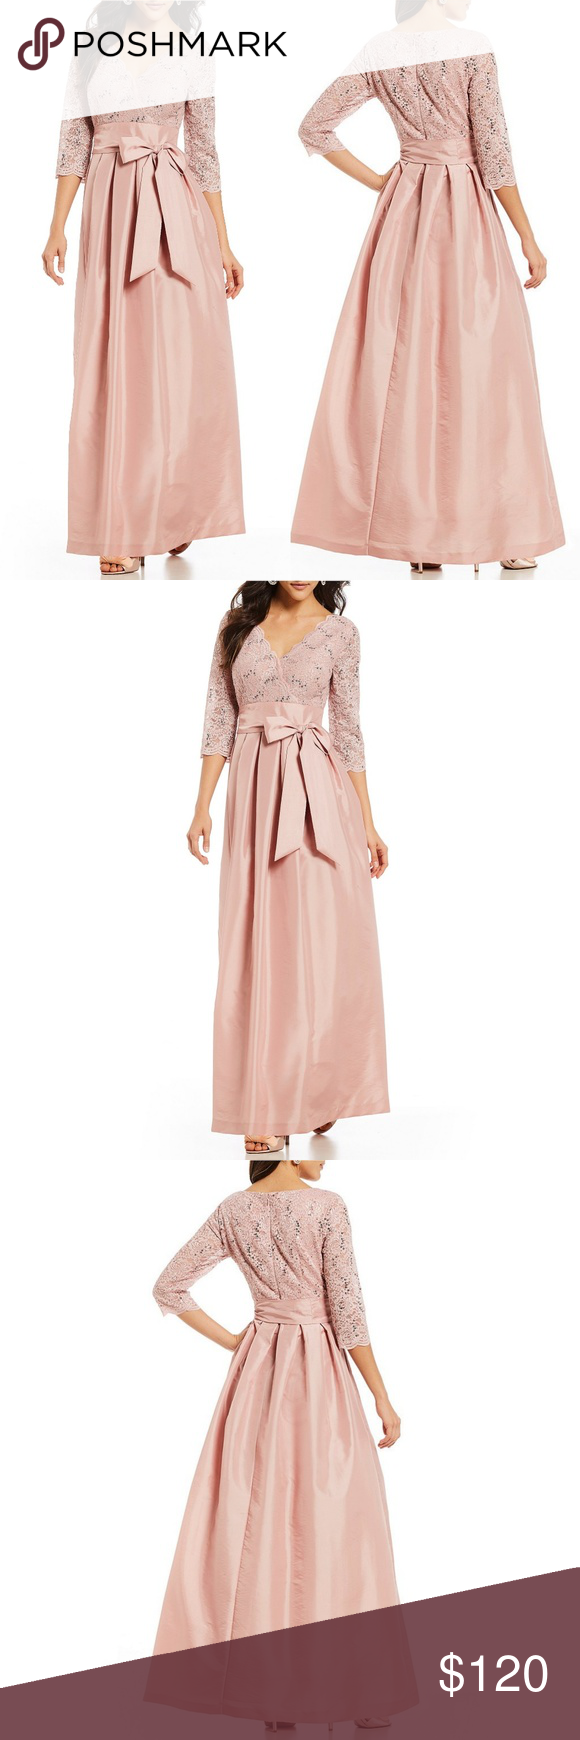 f42b283e42d6 JESSICA HOWARD BOW TIE FRONT GOWN From Jessica Howard, this gown features:  . surplice v-neckline . 3/4 sleeves . lace bodice . self-tie sash . back  zipper ...